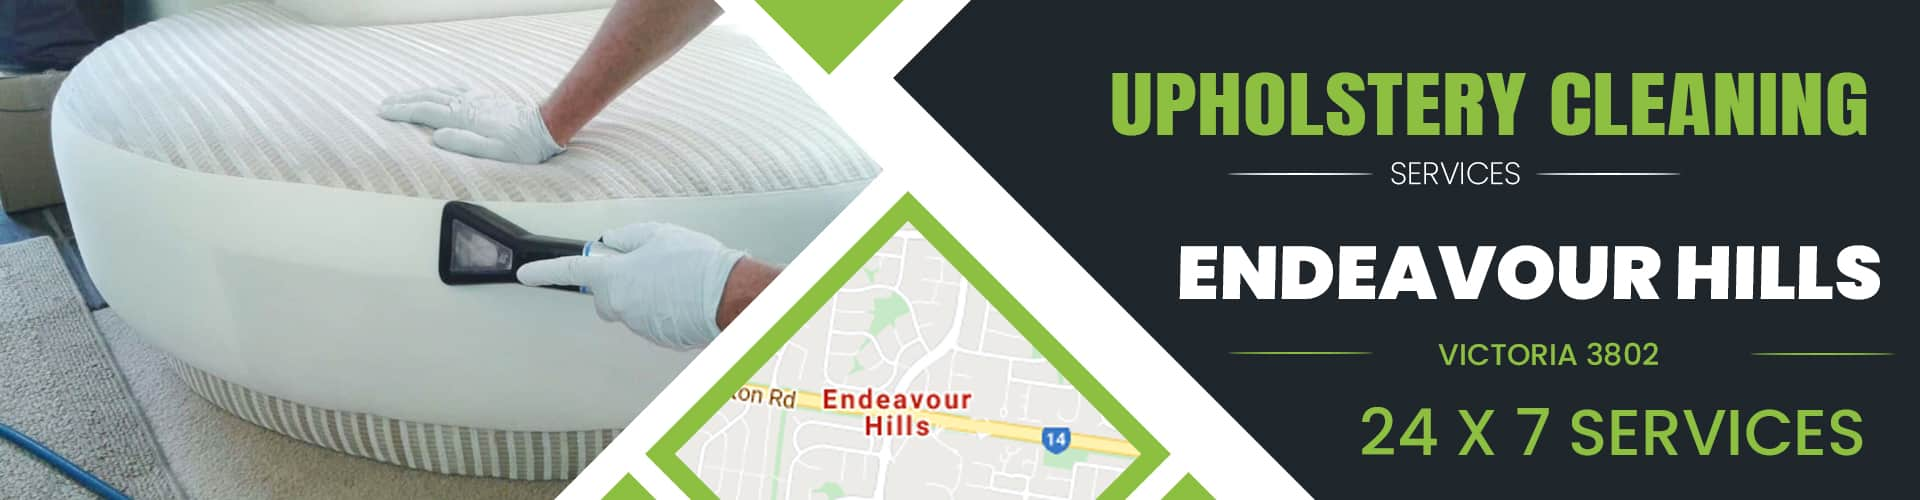 Upholstery Cleaning Endeavour Hills